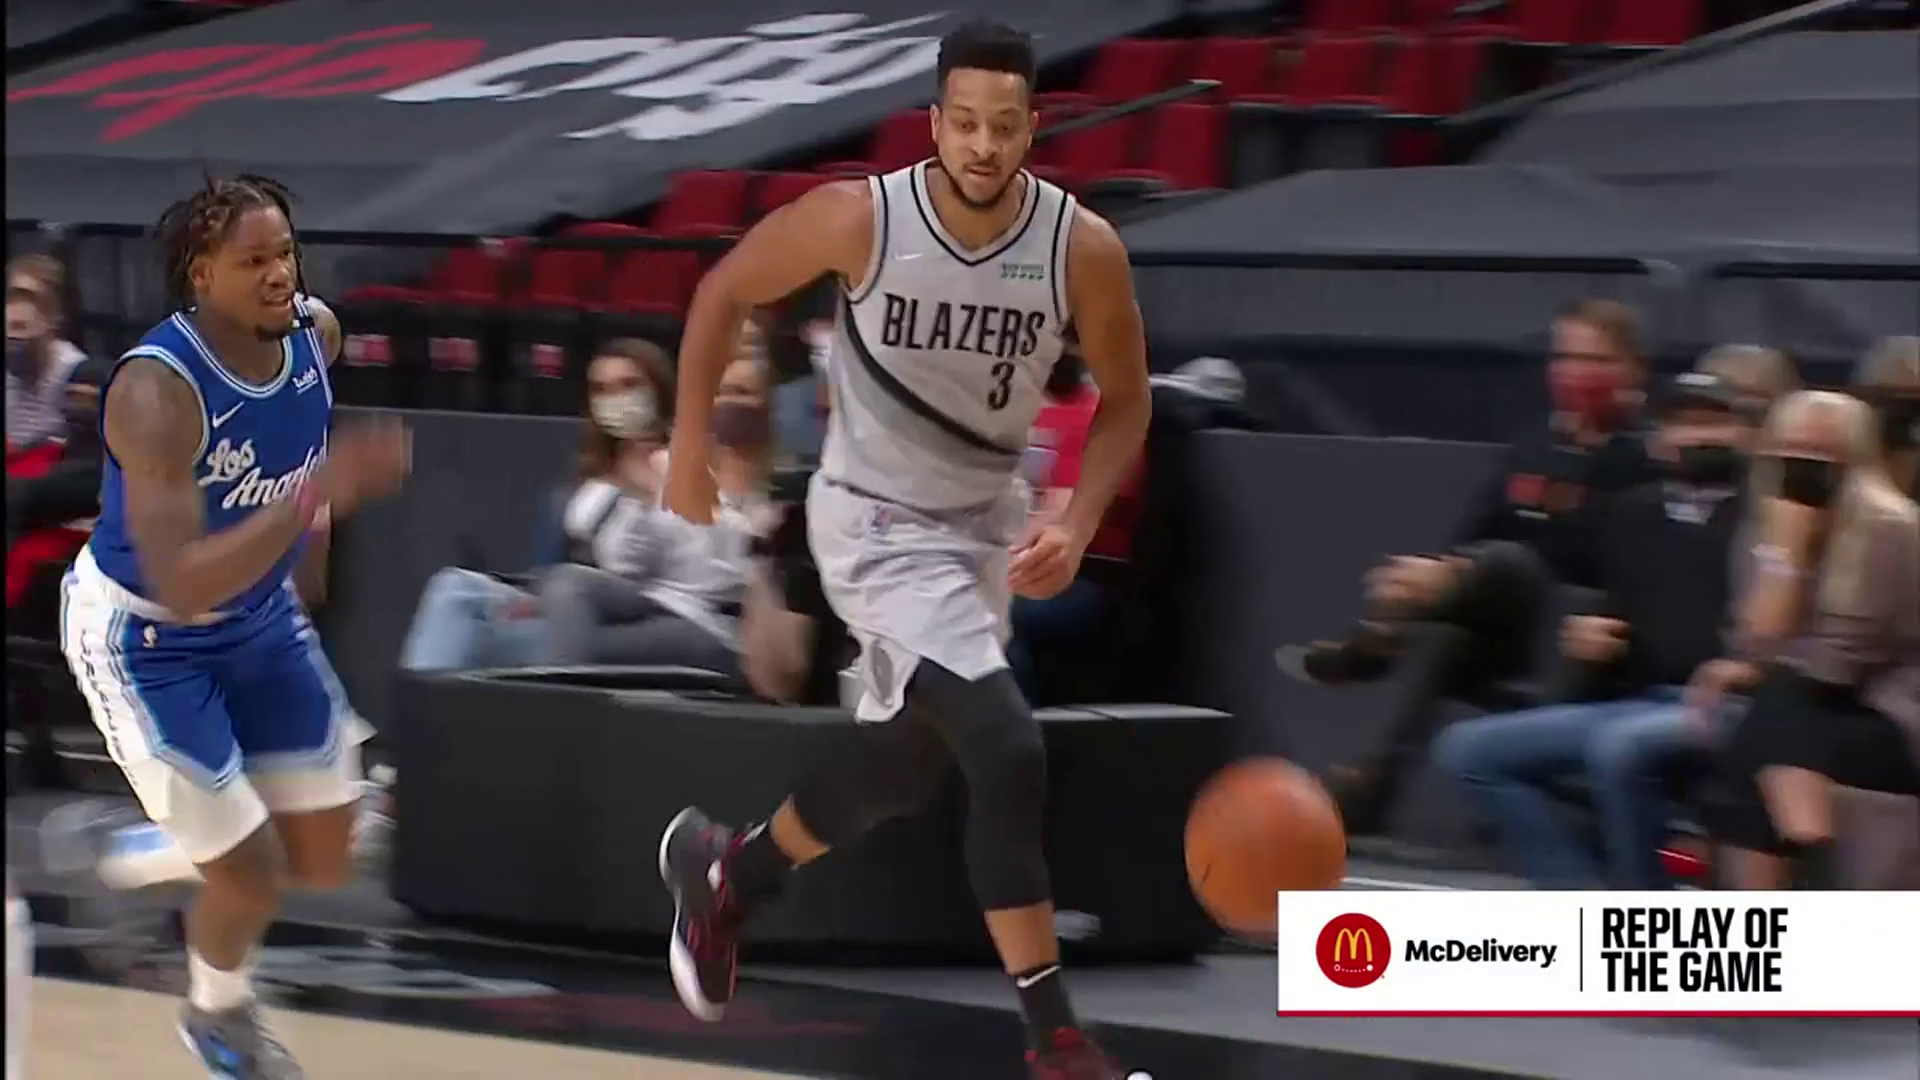 McCollum and Kanter connect on the pick and roll